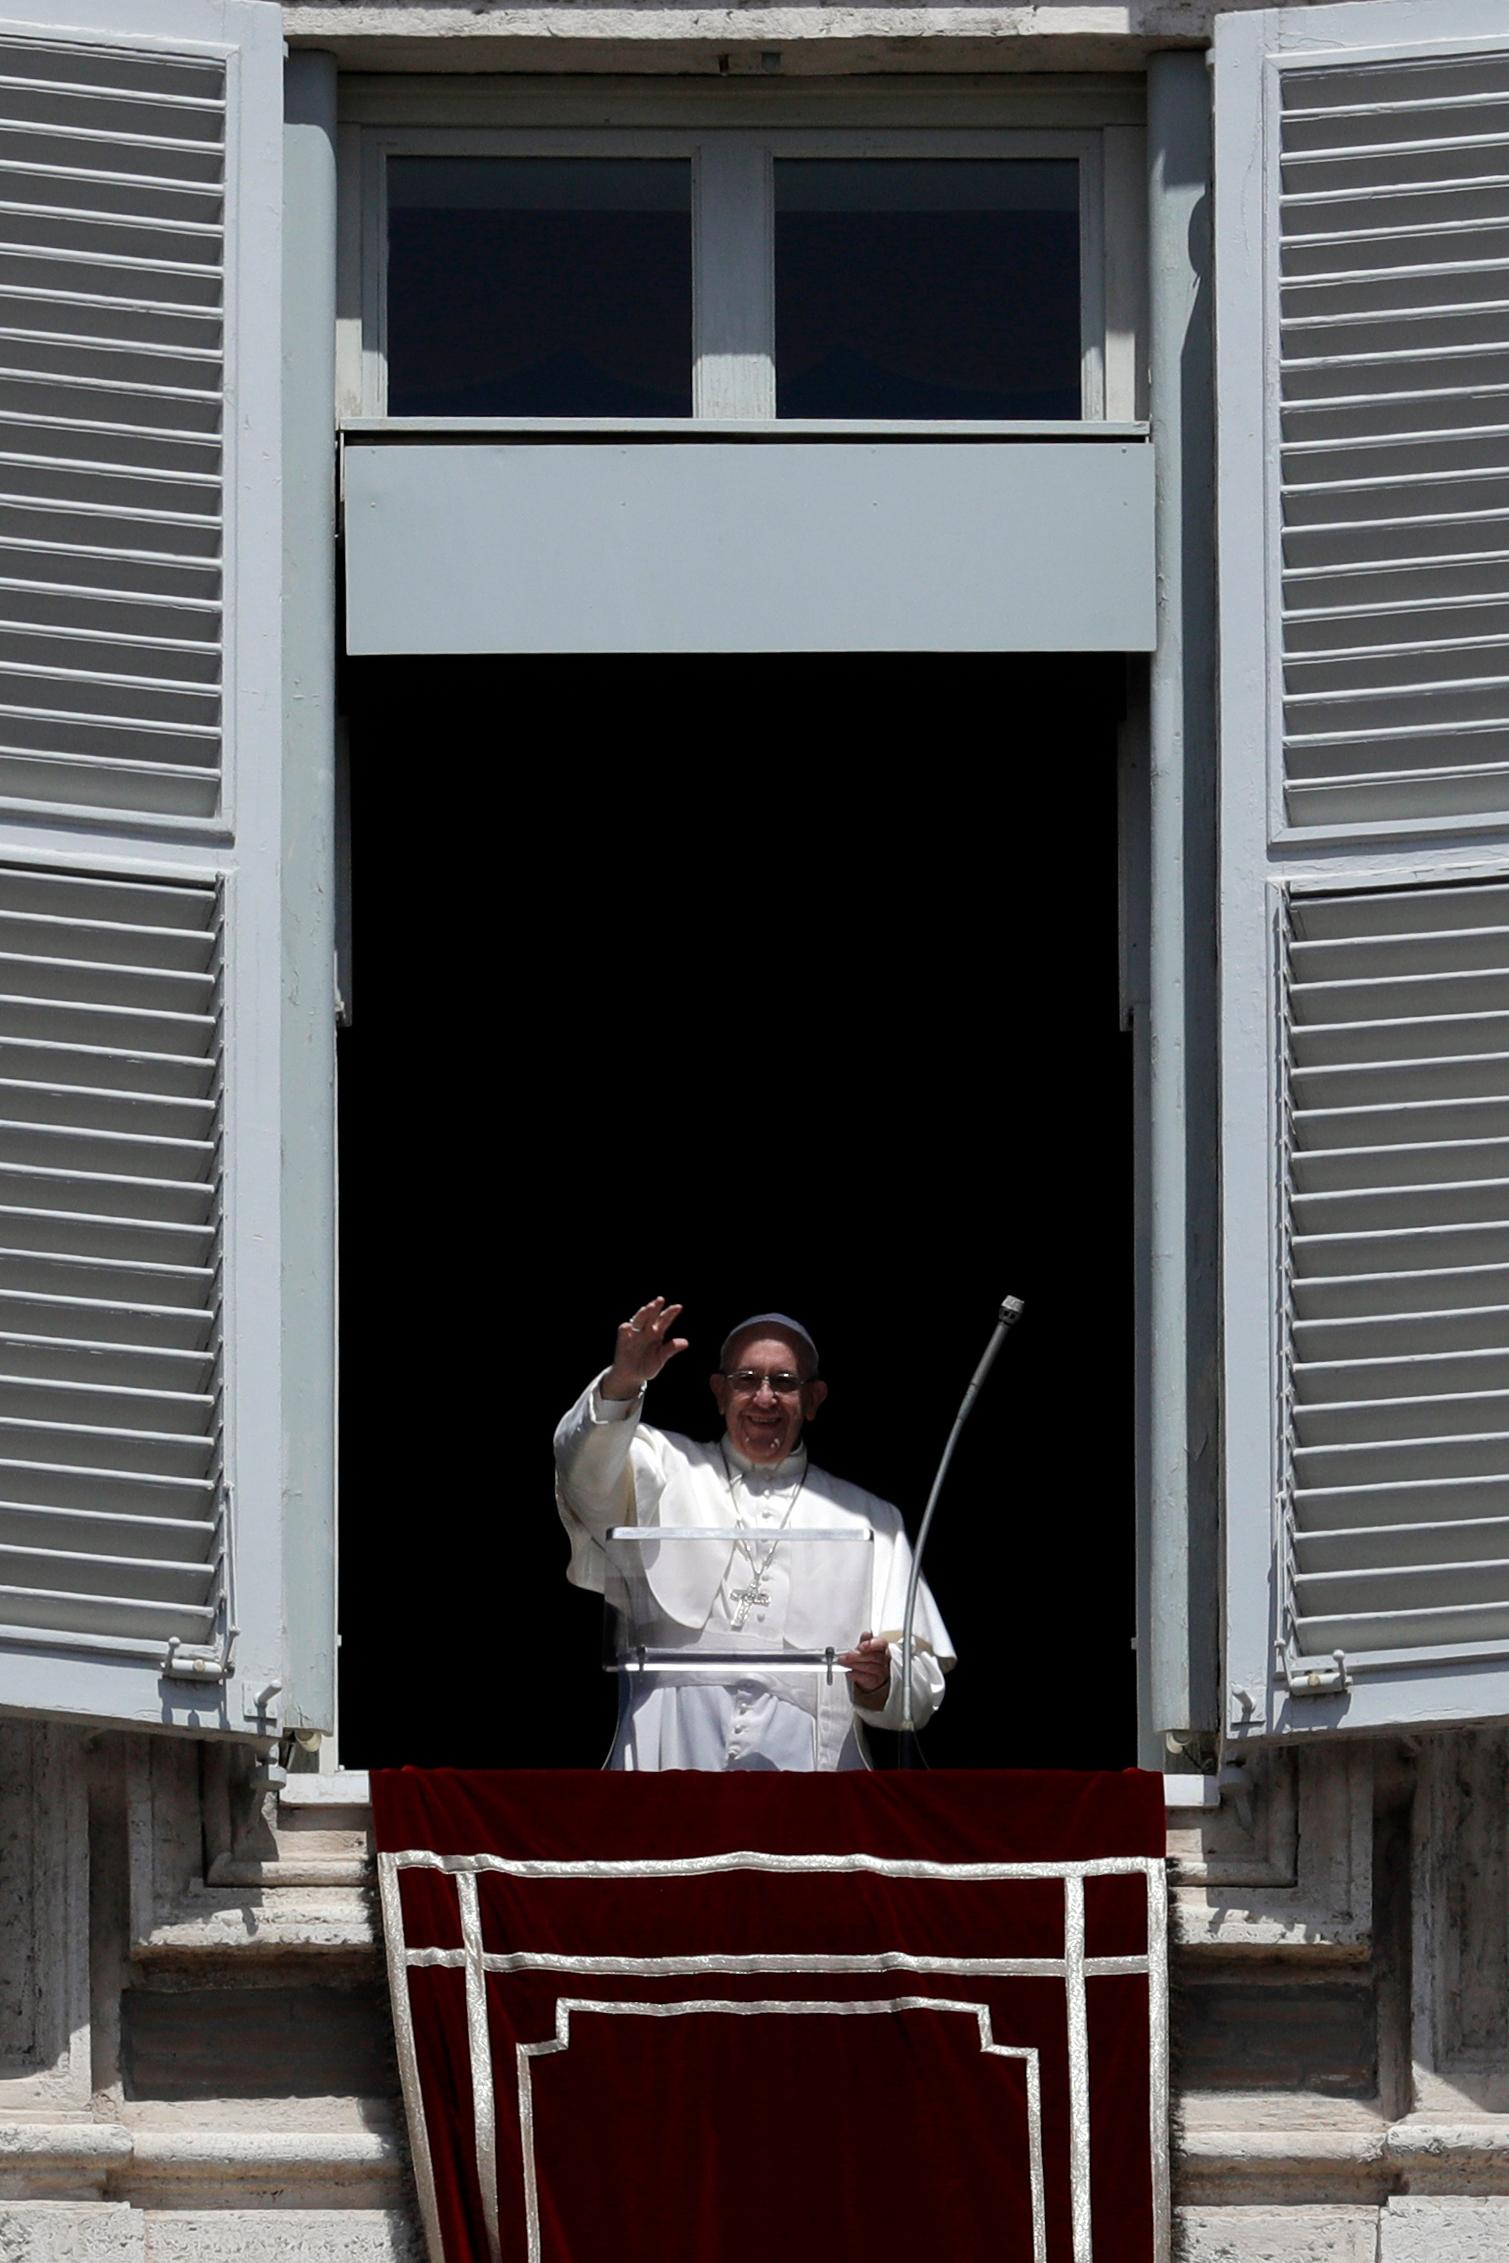 Pope Francis waves to faithful from his studio's window overlooking St. Peter's Square on the occasion of the Regina Coeli noon prayer at the Vatican, Sunday, May 14, 2017. (AP Photo/Gregorio Borgia)